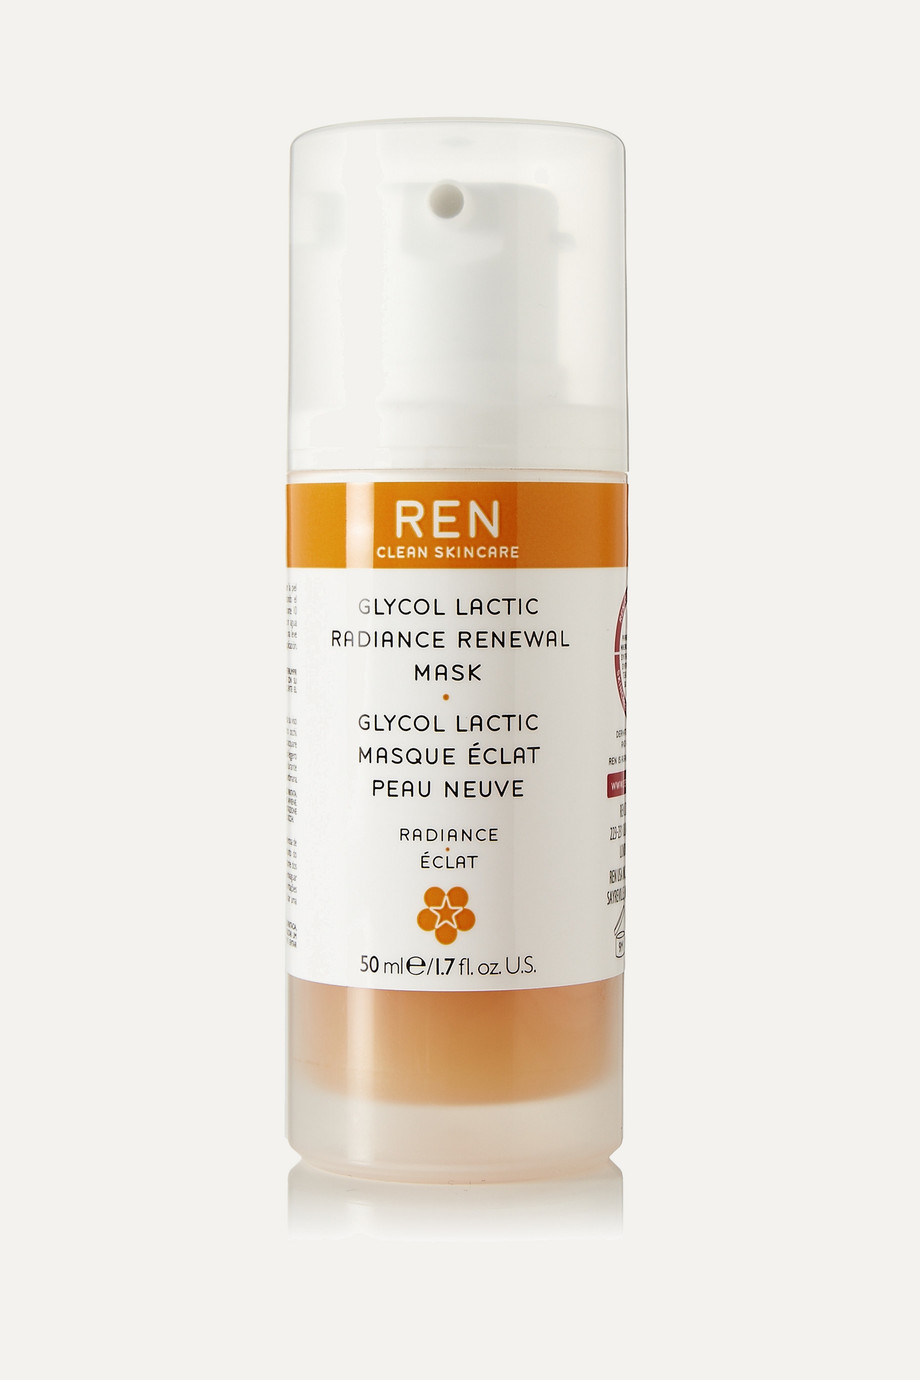 Glycol Lactic Radiance Renewal Mask, 50ml, by Ren Skincare